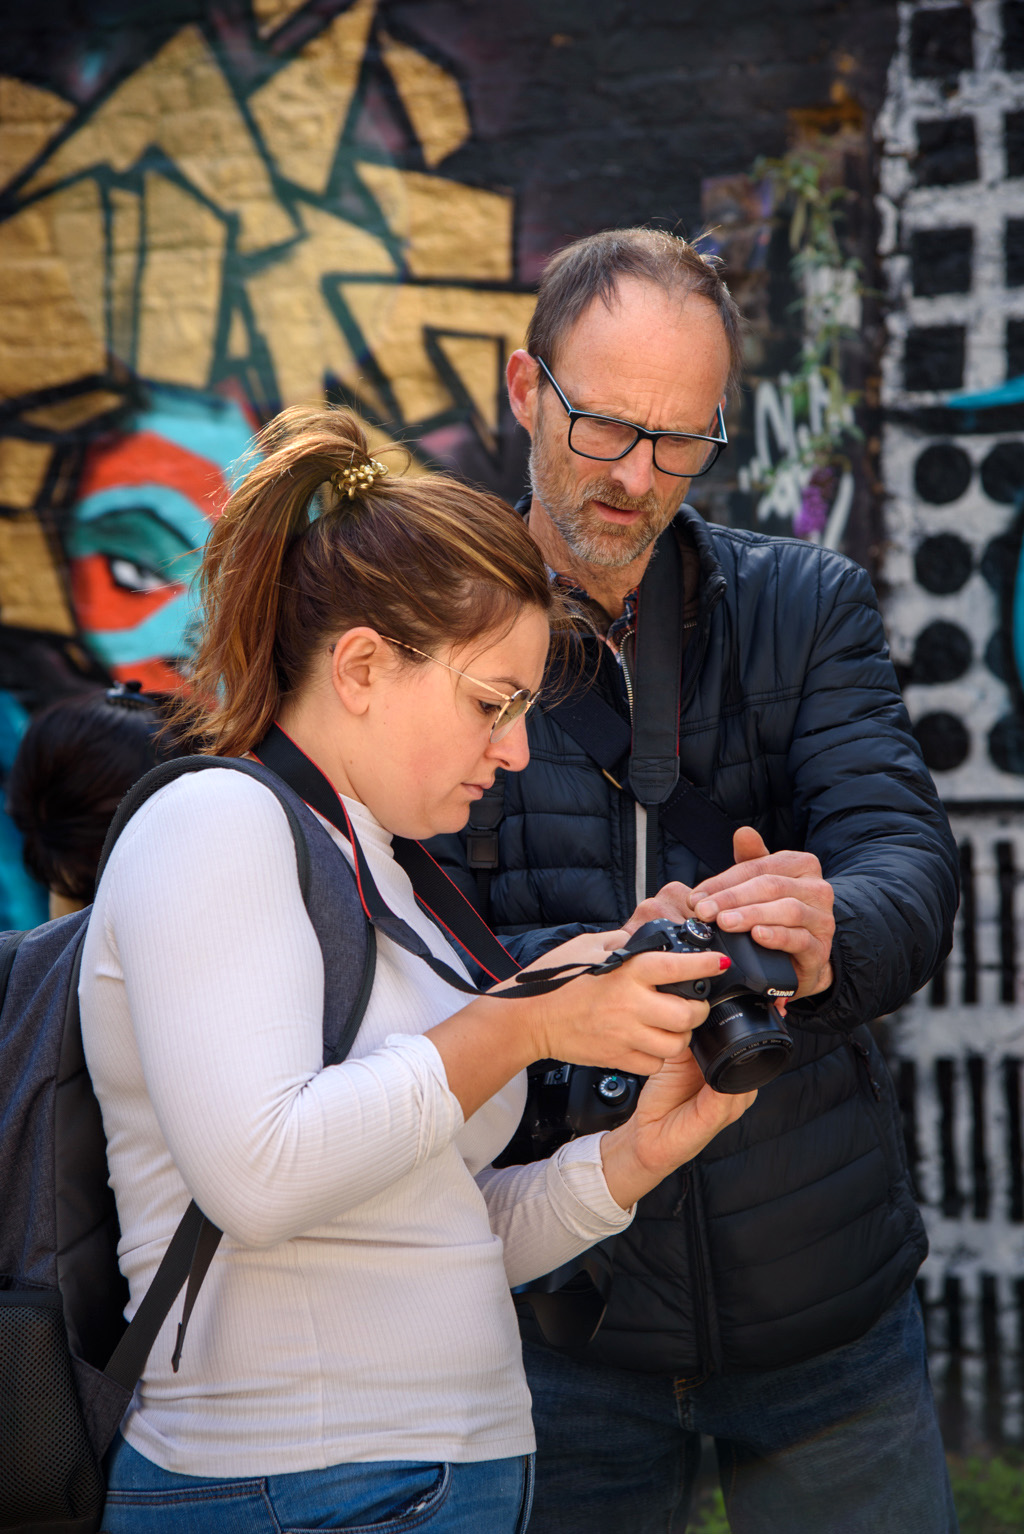 Street Photography Course London Brick Lane 30th August 2020